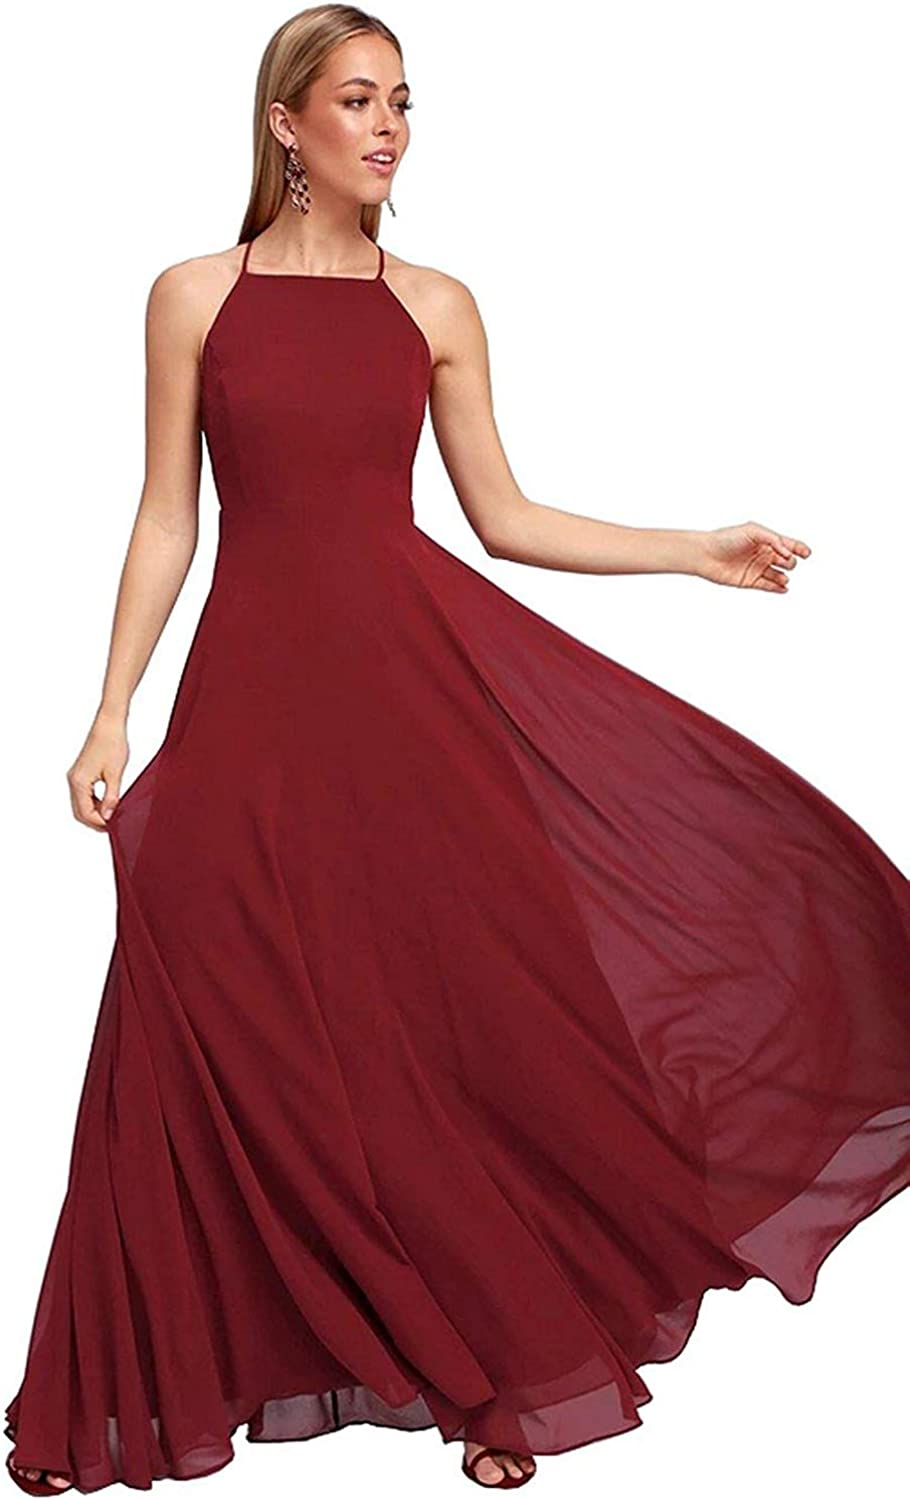 FTBY VNeck Long Prom Dress Satin Pleated Party Grown Beaded Long Formal Evening Dresses